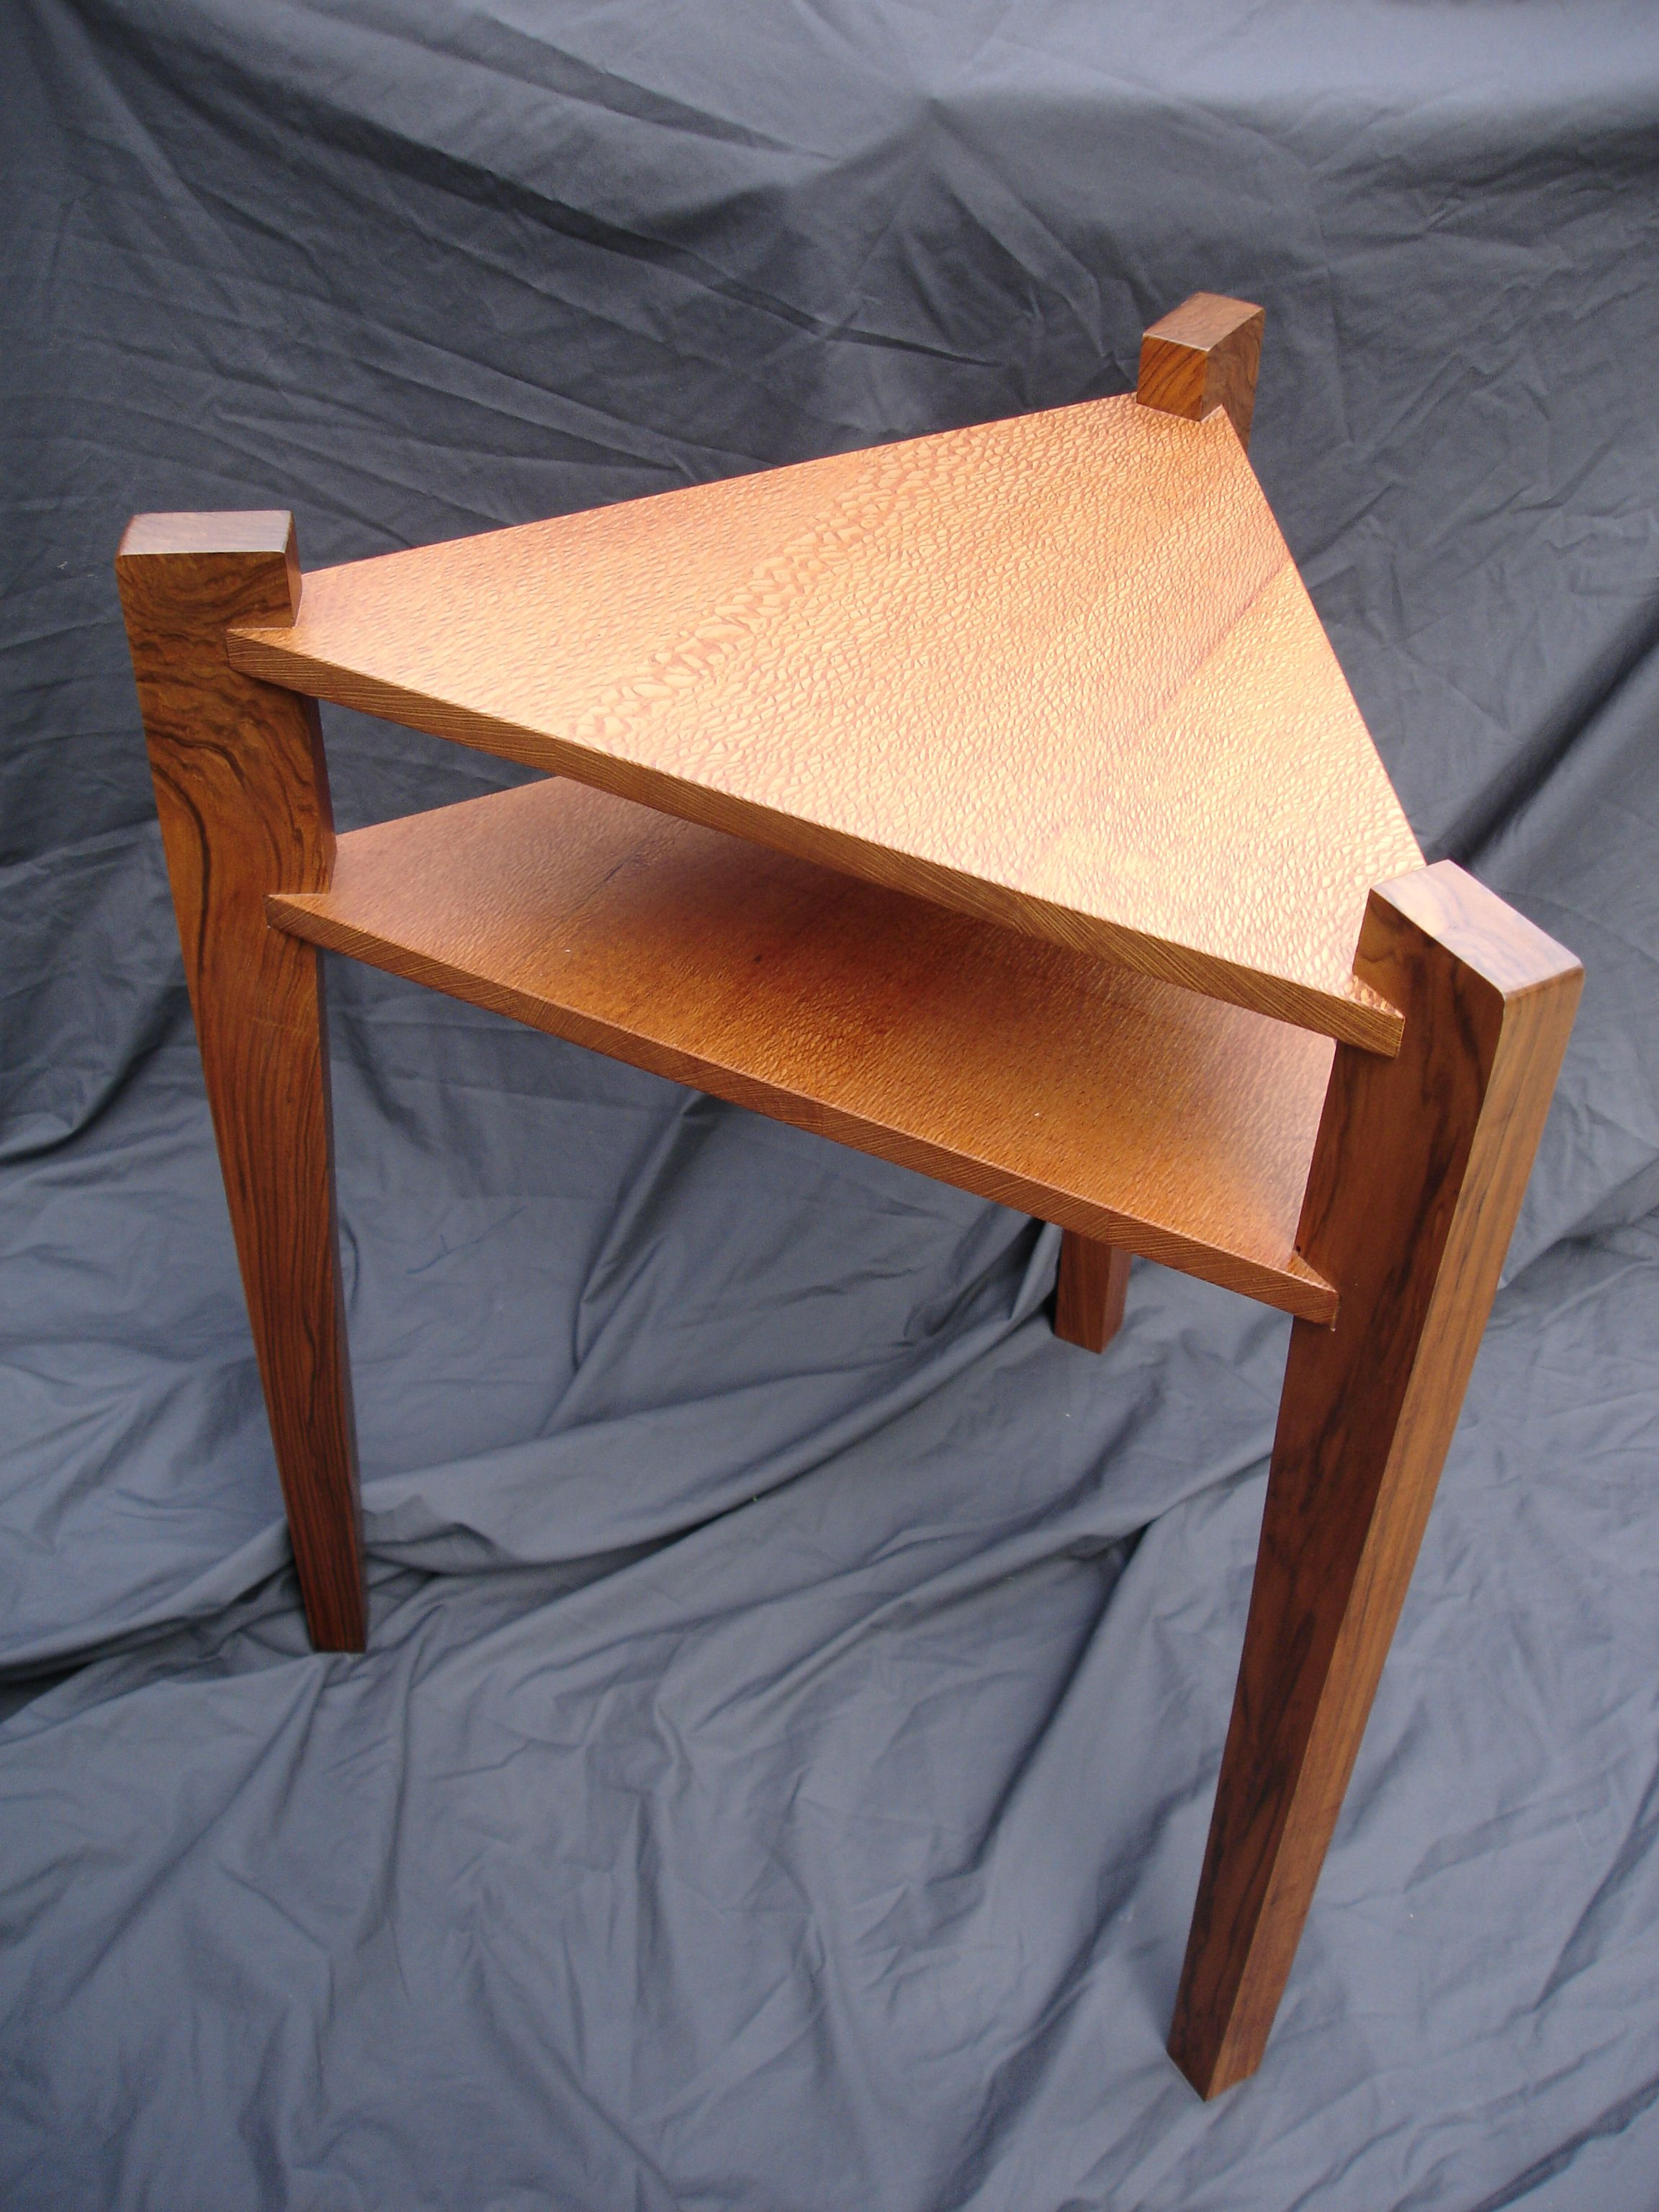 My Bedside Table: Triangle Table For My Bedside. Only About 2 1/2 Feet